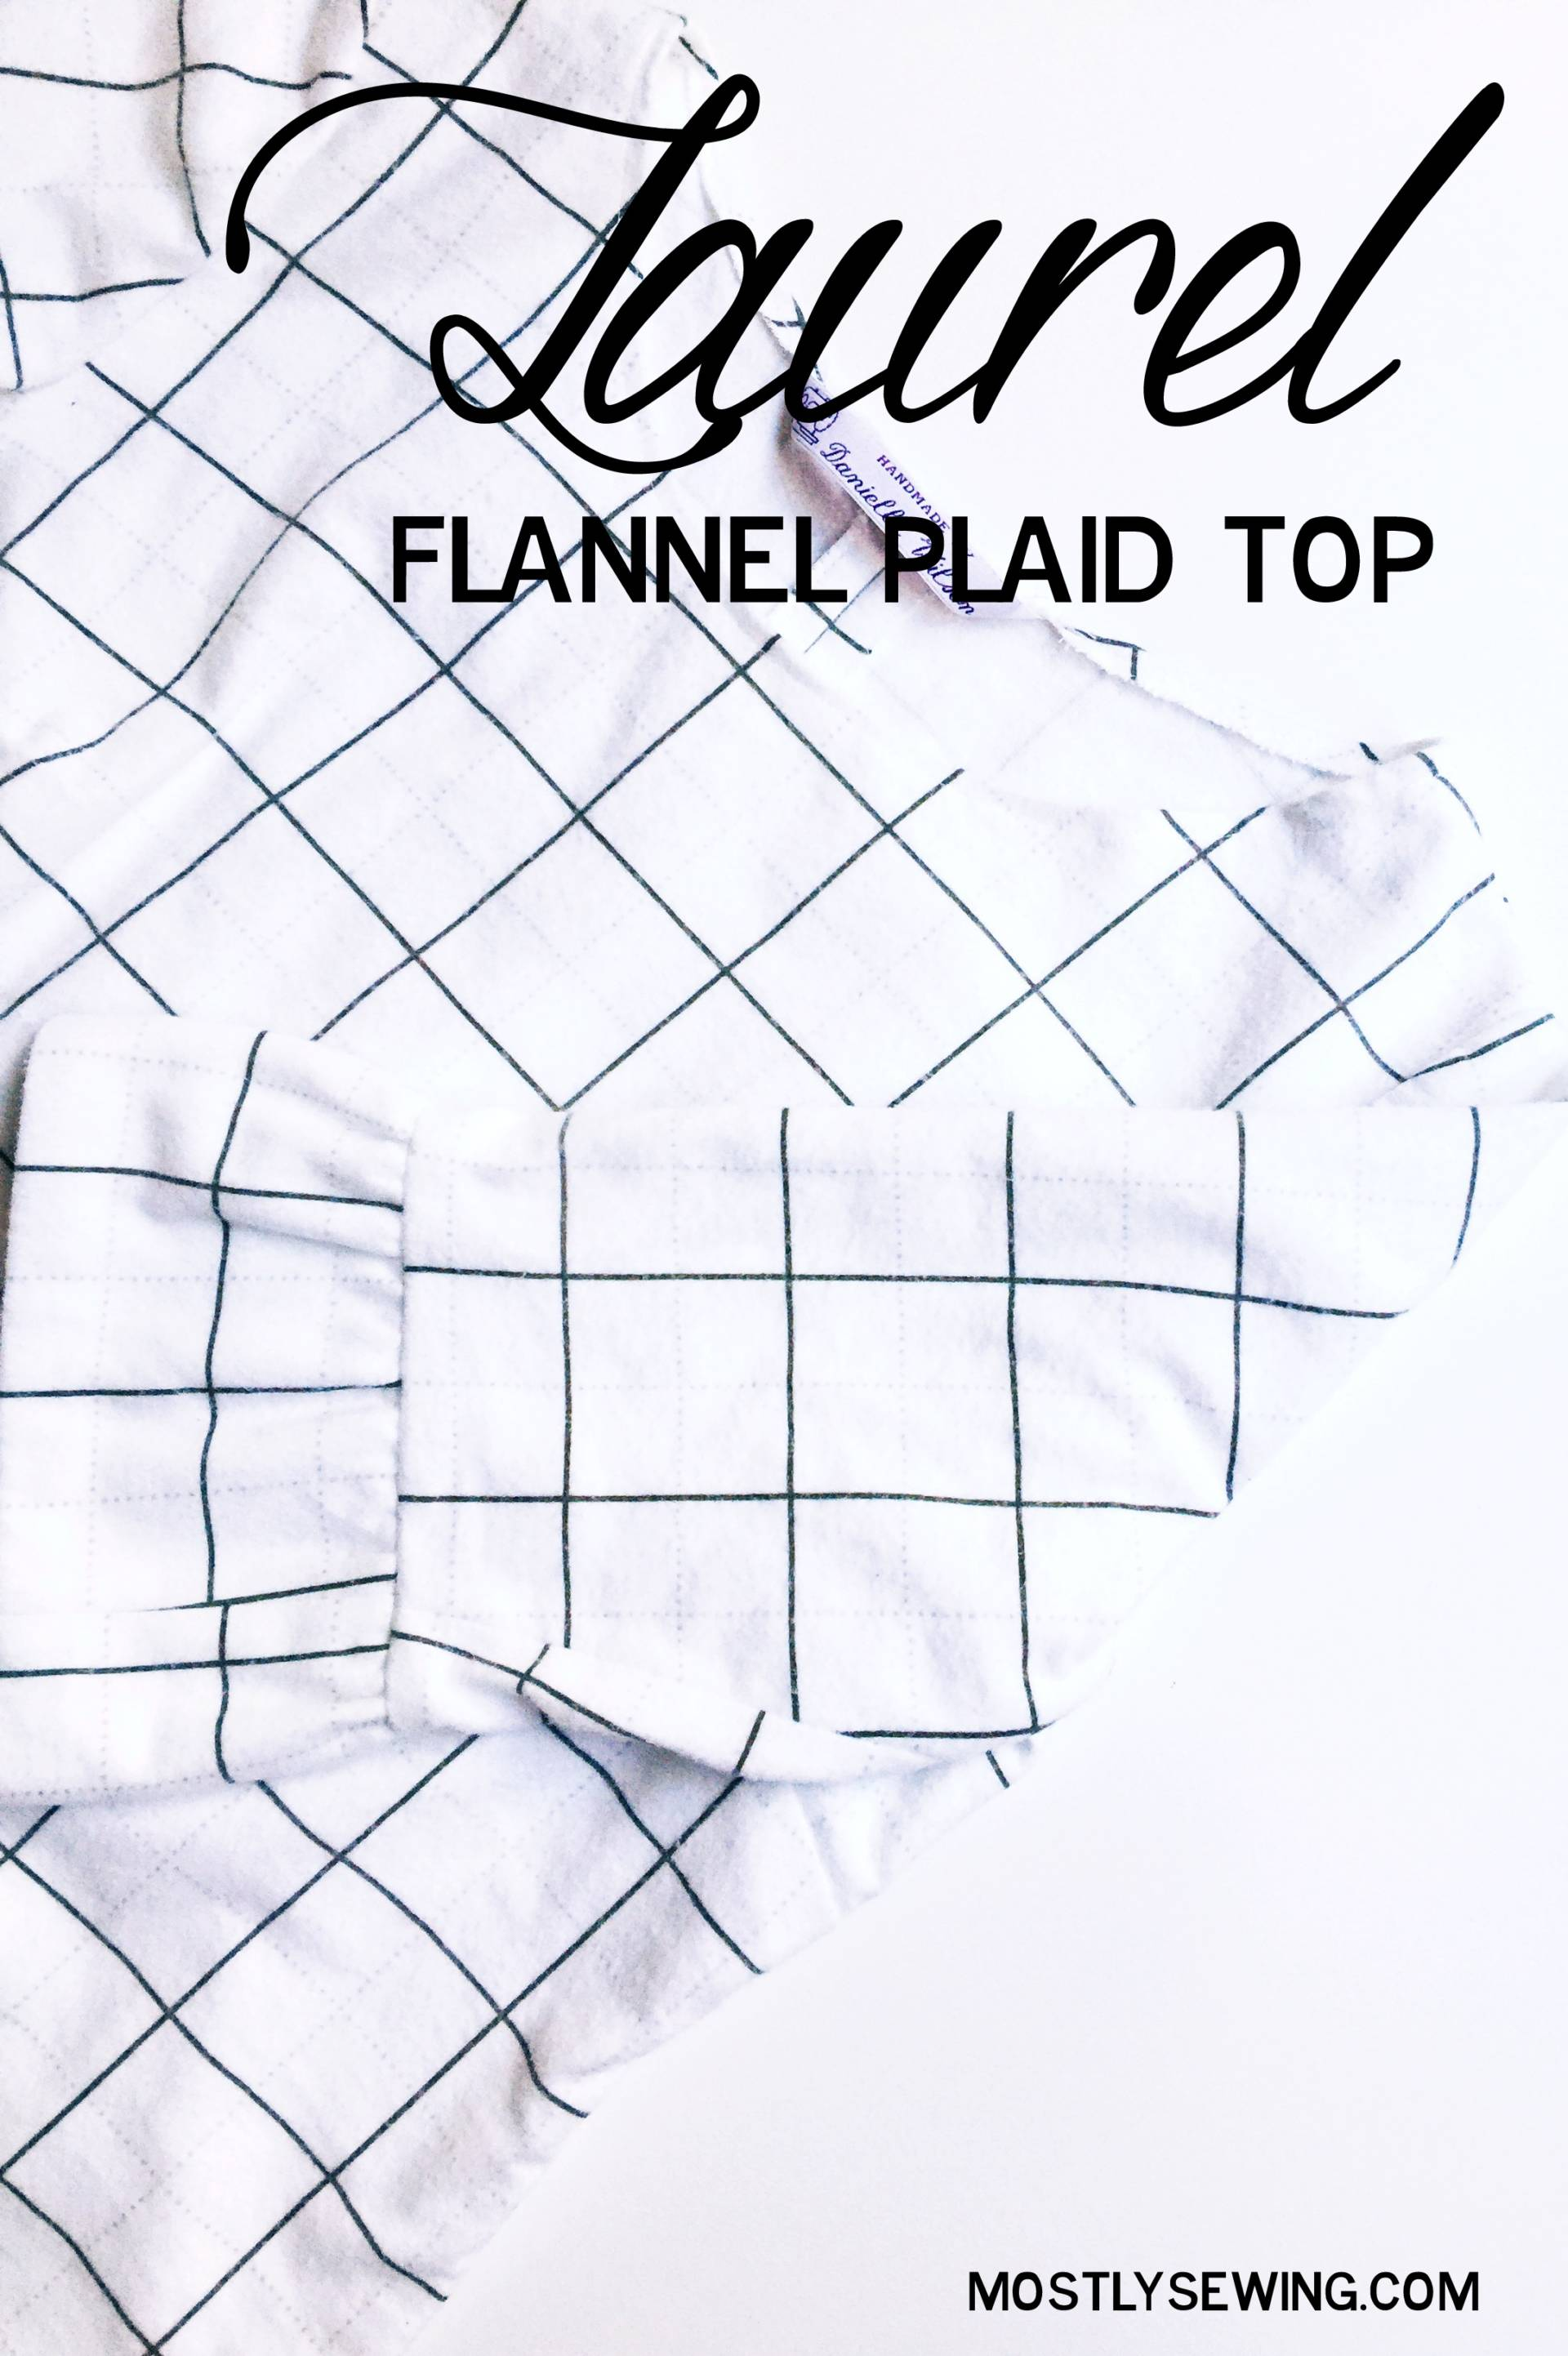 There's nothing better than a flannel plaid shirt for autumn - and this is a super cute take on the fall favorite